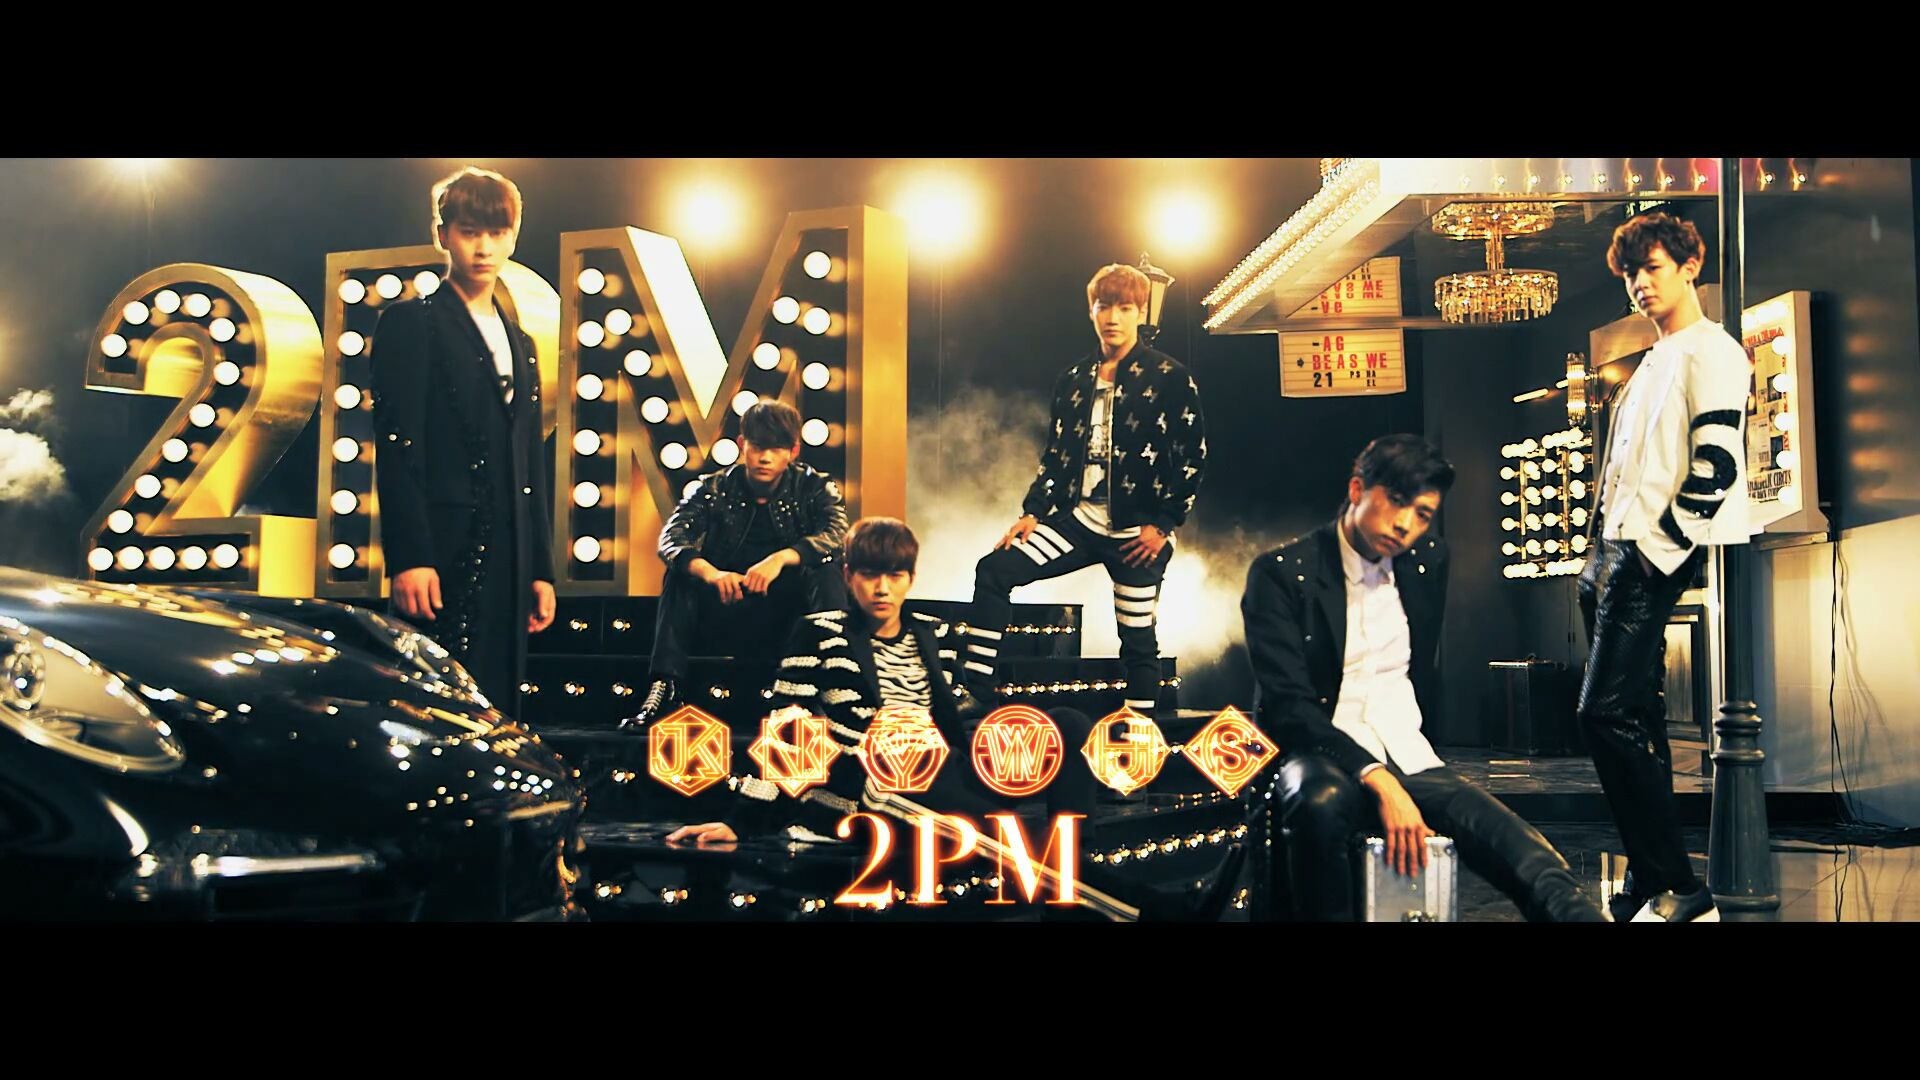 [가사번역] Burning love - 2PM